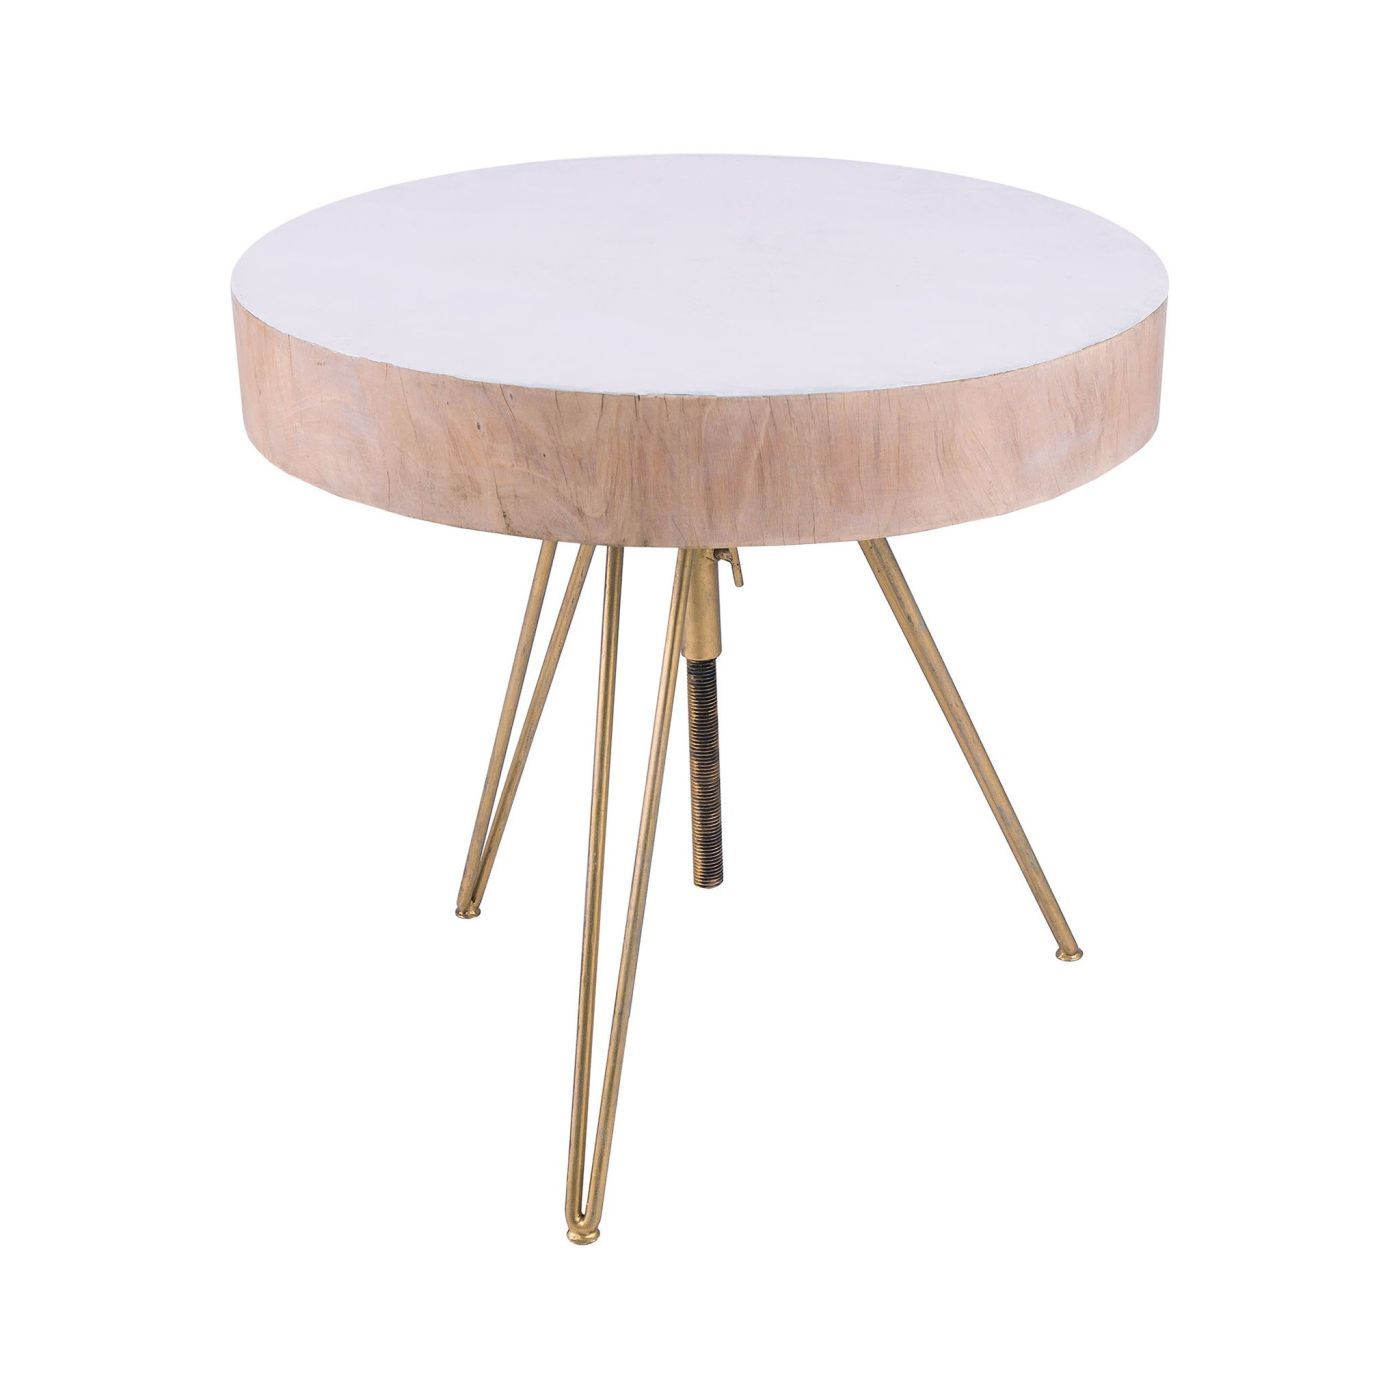 elk group biarritz suar wood accent table with gold side tables metal legs whitegold white marble square coffee brass usb end small bedroom chairs groups kitchen dining sets